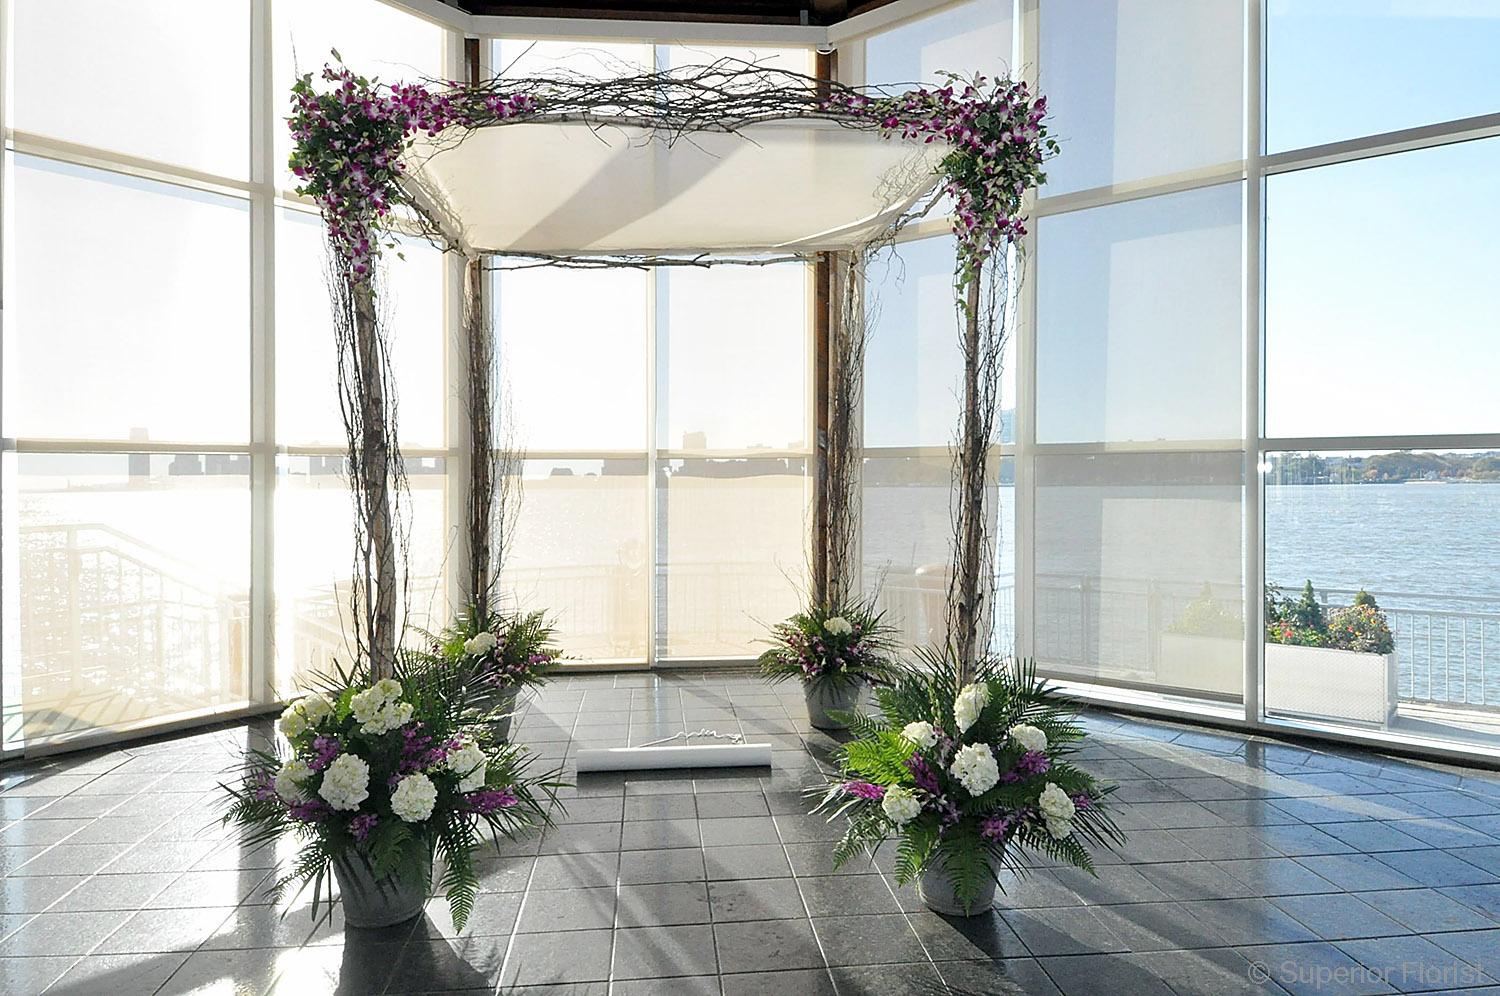 Superior Florist – Wedding Ceremony: Birch pole chuppah with white satin top. Natural birch branches on poles and beams. Teardrop arrangements of variegated Dendrobium orchids. Bases in white and purple.